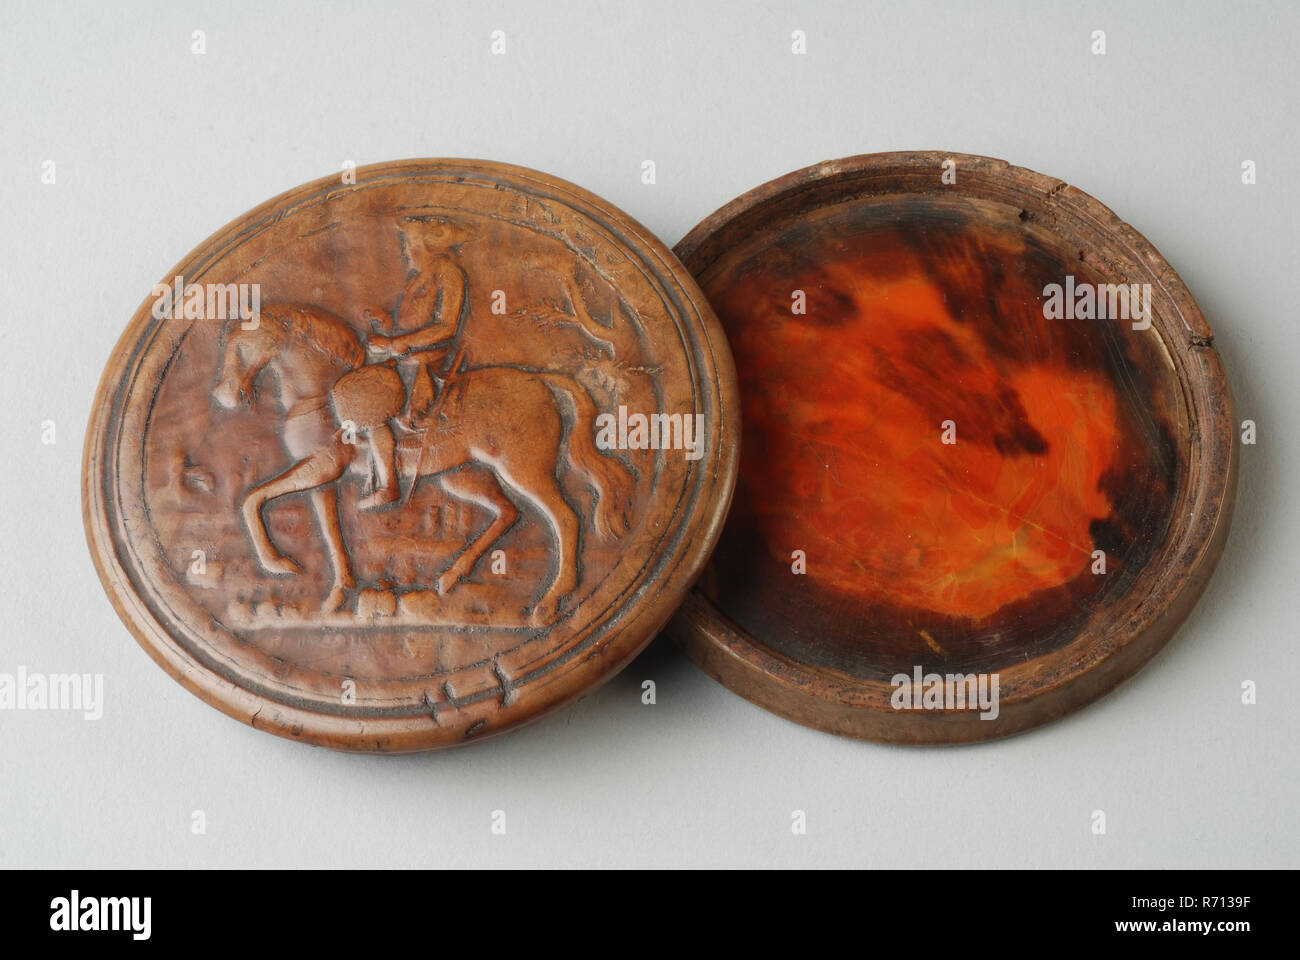 Wooden snuff box with rider embossed on the lid, snuffbox holder walnut wood turtle, Round. Wood on the outside; turtle inside. On the cover of man on horseback Frederick the Great King of Prussia. Snuff box personal attribute personal equipment smokehouse tobacco snuff sniffing keep tobacco box animal material keratin - Stock Image